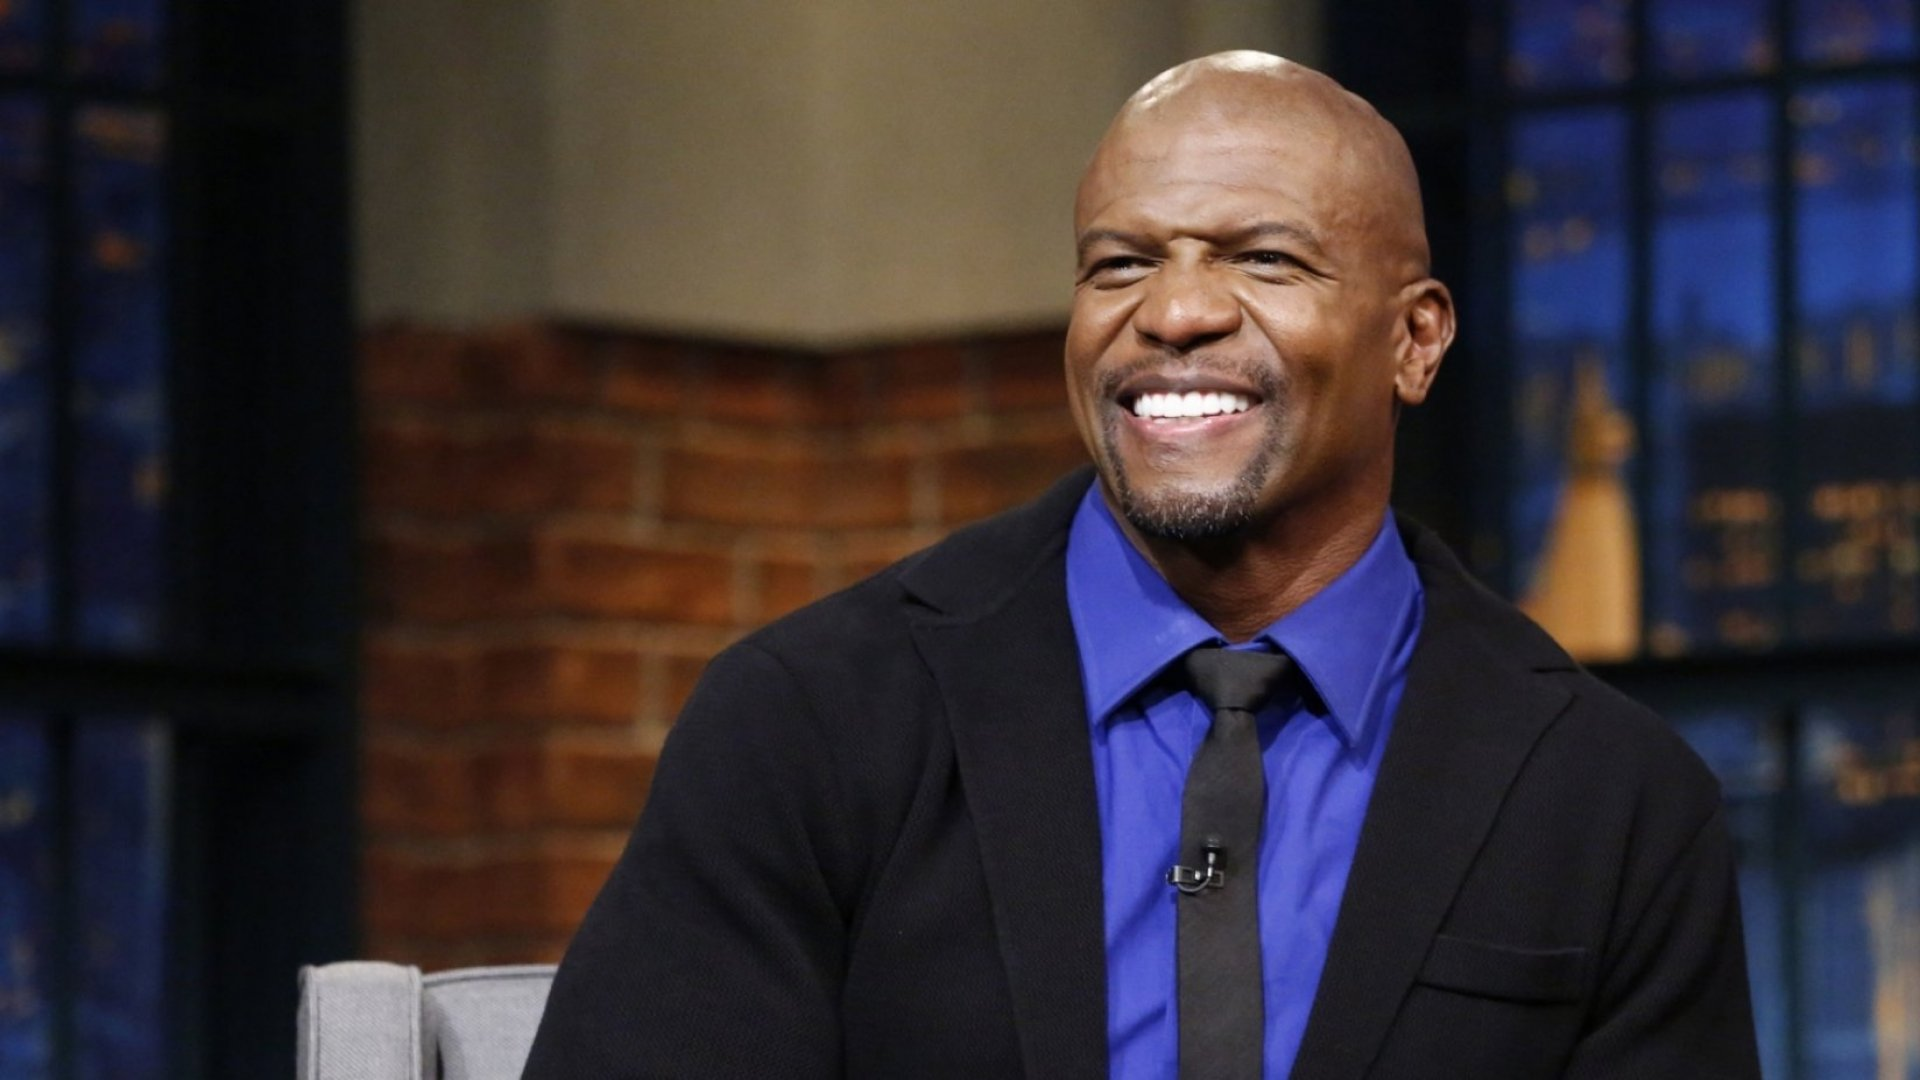 'Brooklyn Nine-Nine' Star Terry Crews's 5-Word Response to Russell Simmons Is a Lesson in Emotional Intelligence